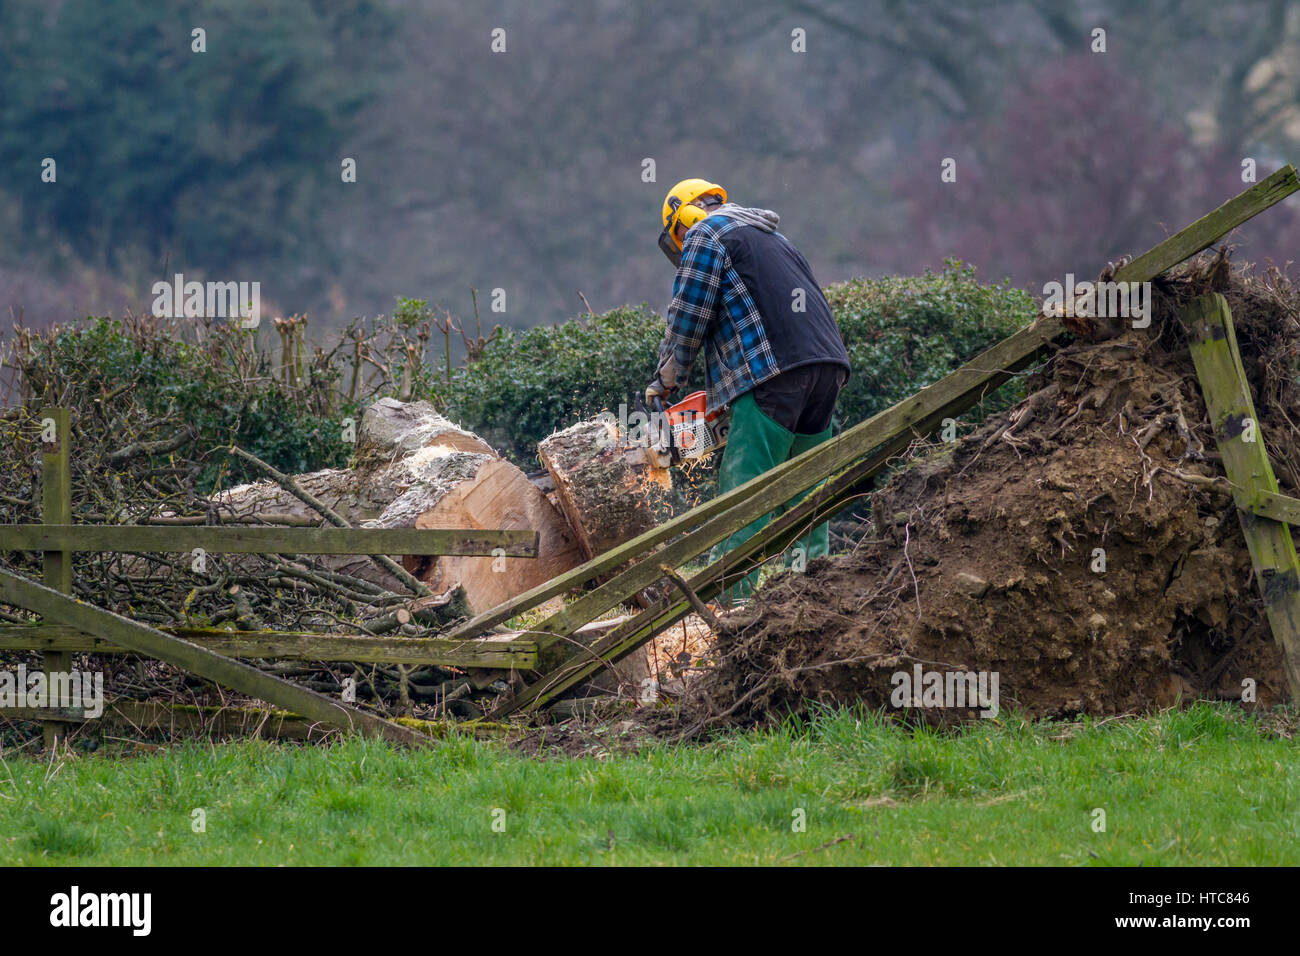 Tree surgeon using a chainsaw to remove a fallen tree following gales in storms, West Yorkshire, England, UK Stock Photo